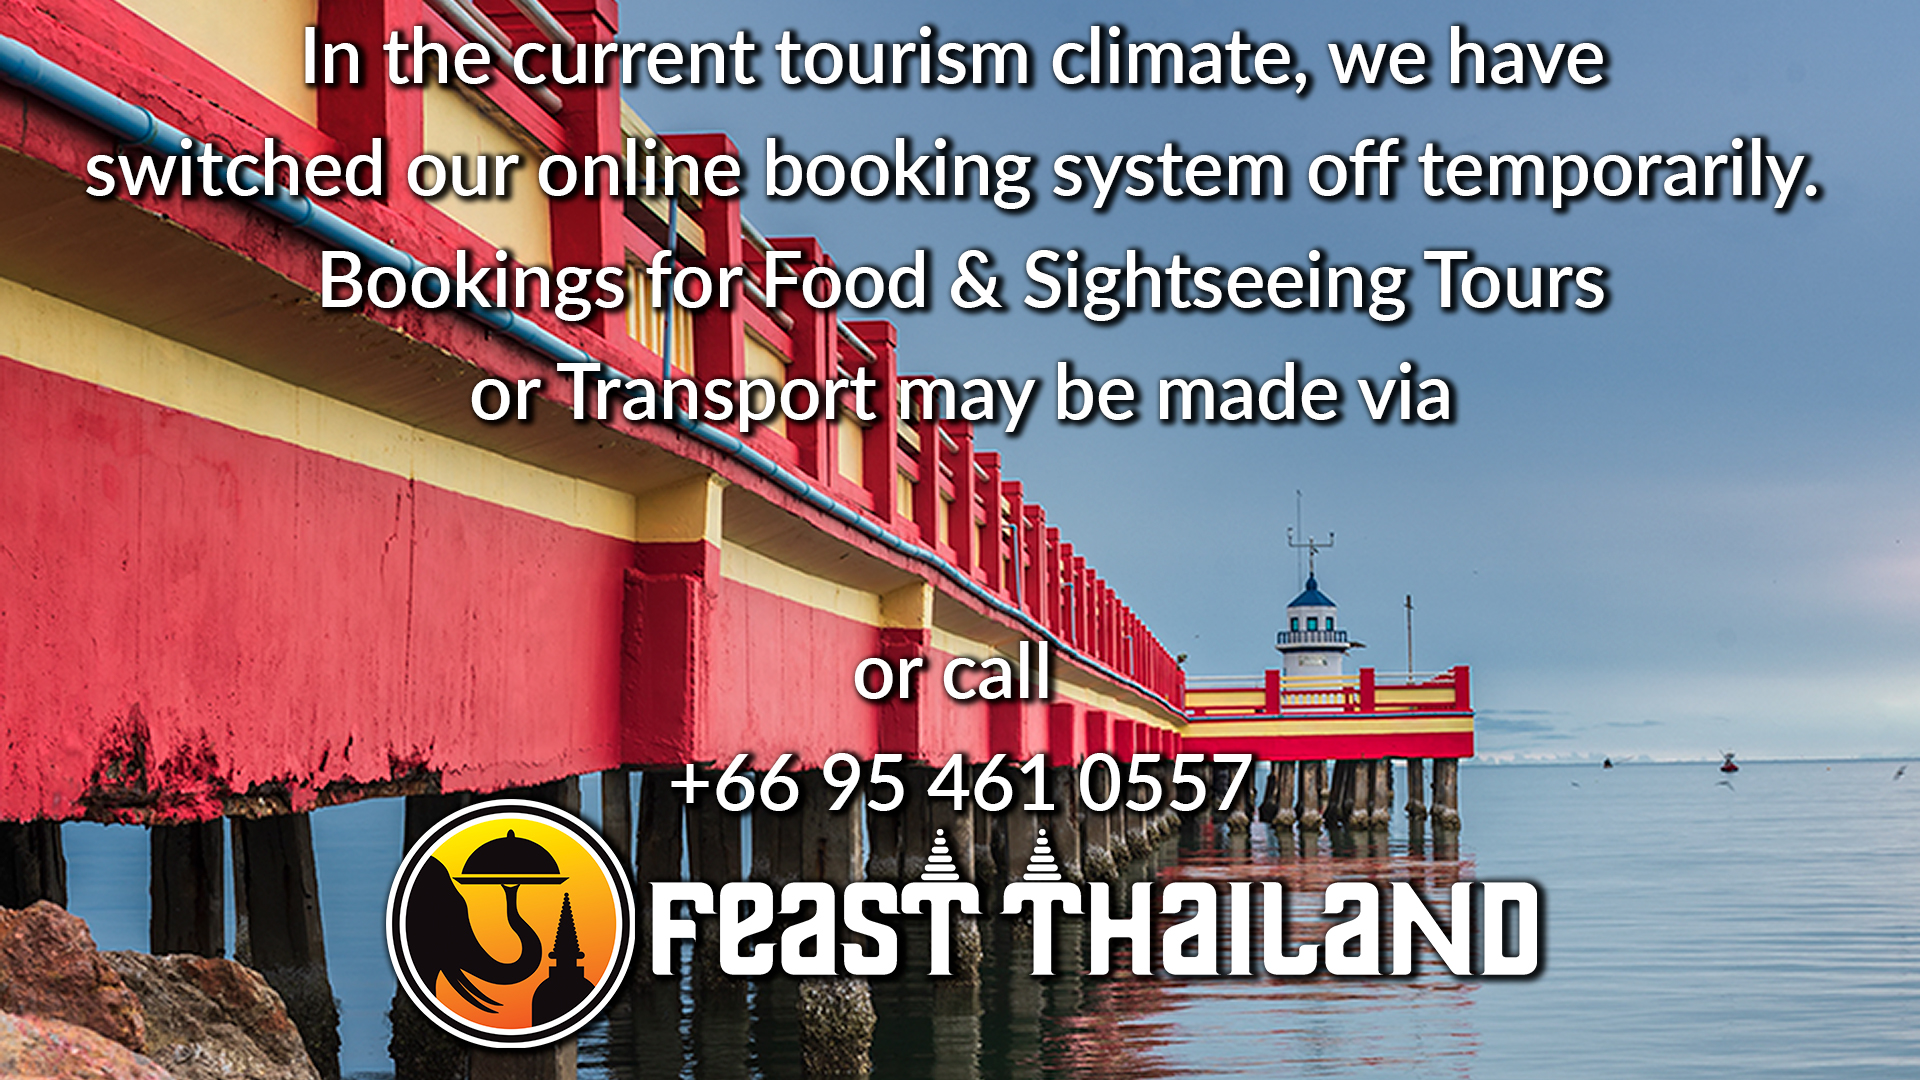 Feast Thailand Online Booking System